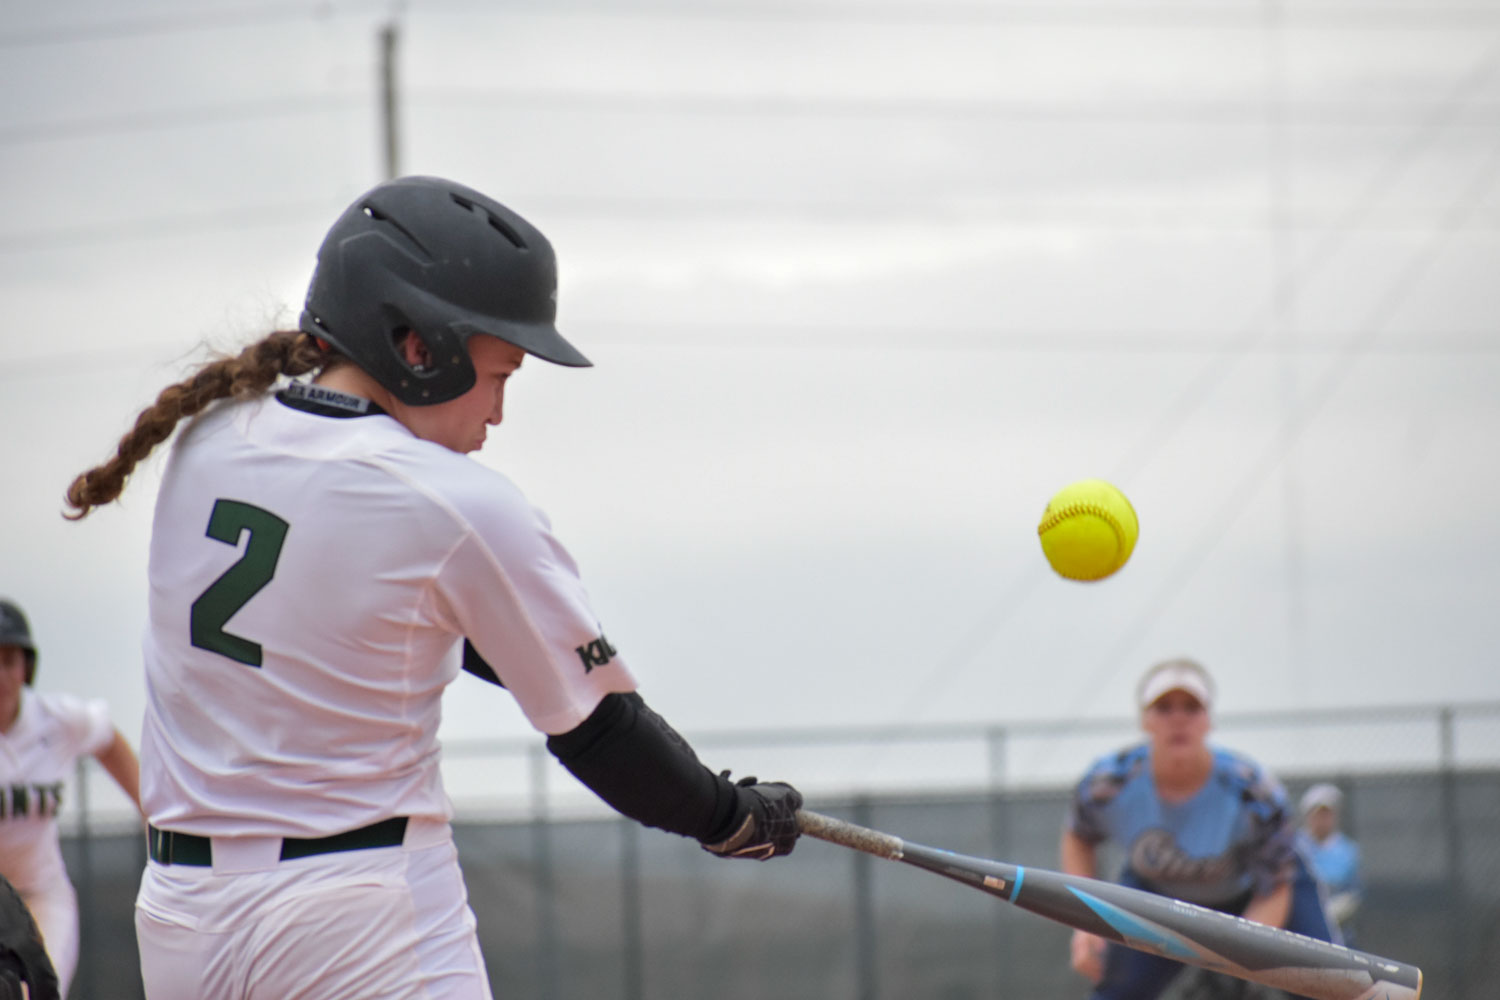 Jaci Oakley, freshman infielder, pops a shallow fly ball between third and left field for her first hit of the game April 3, against Otero Junior College. The Lady Saints split the doubleheader losing the first game, 3-7, but won the second, 10-5.